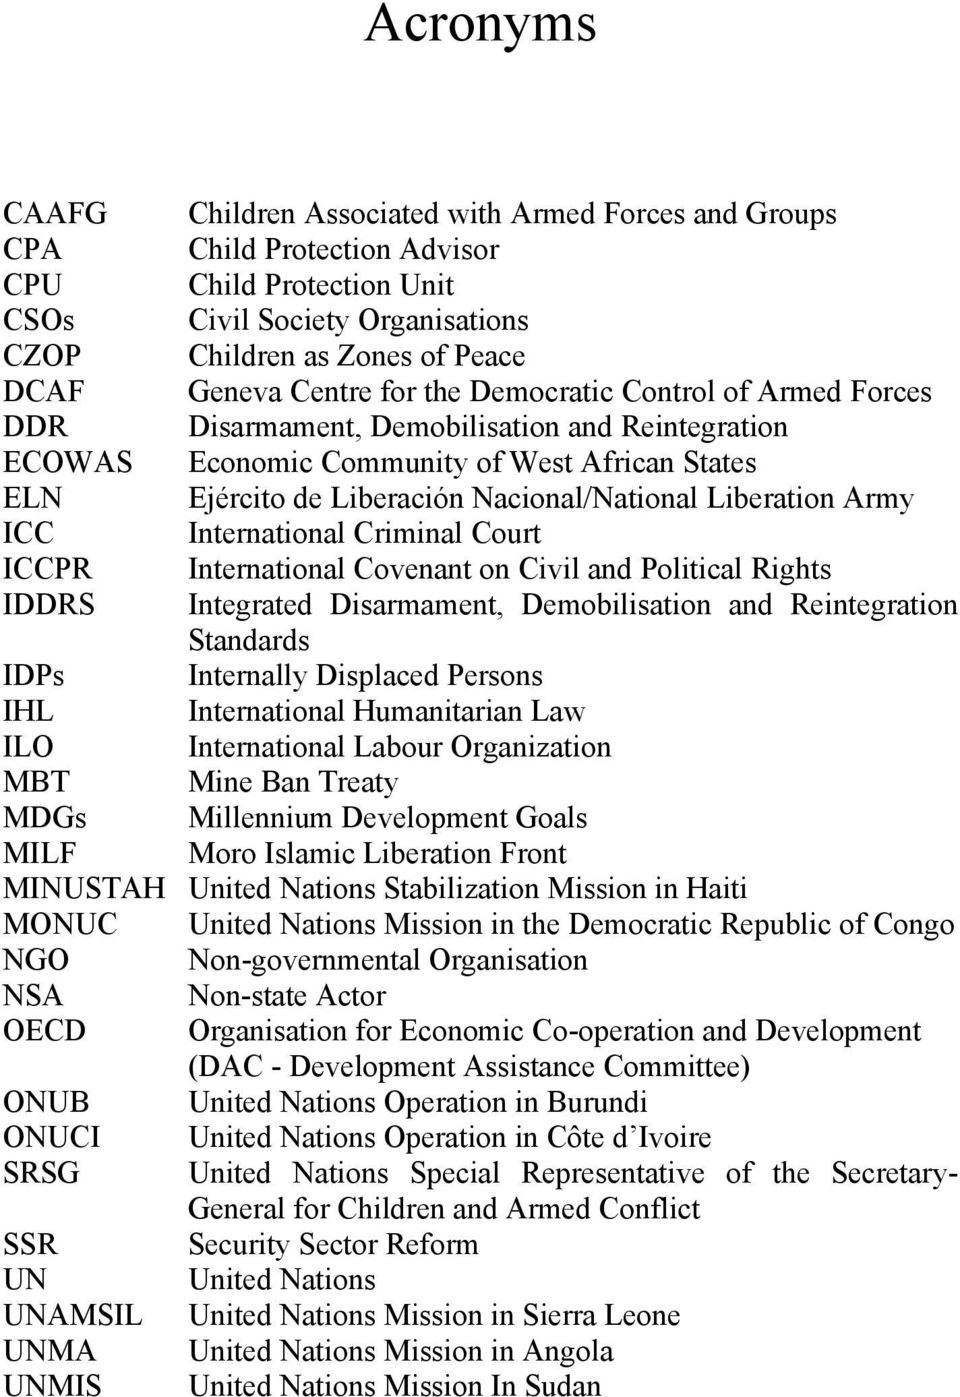 Liberation Army ICC International Criminal Court ICCPR International Covenant on Civil and Political Rights IDDRS Integrated Disarmament, Demobilisation and Reintegration Standards IDPs Internally